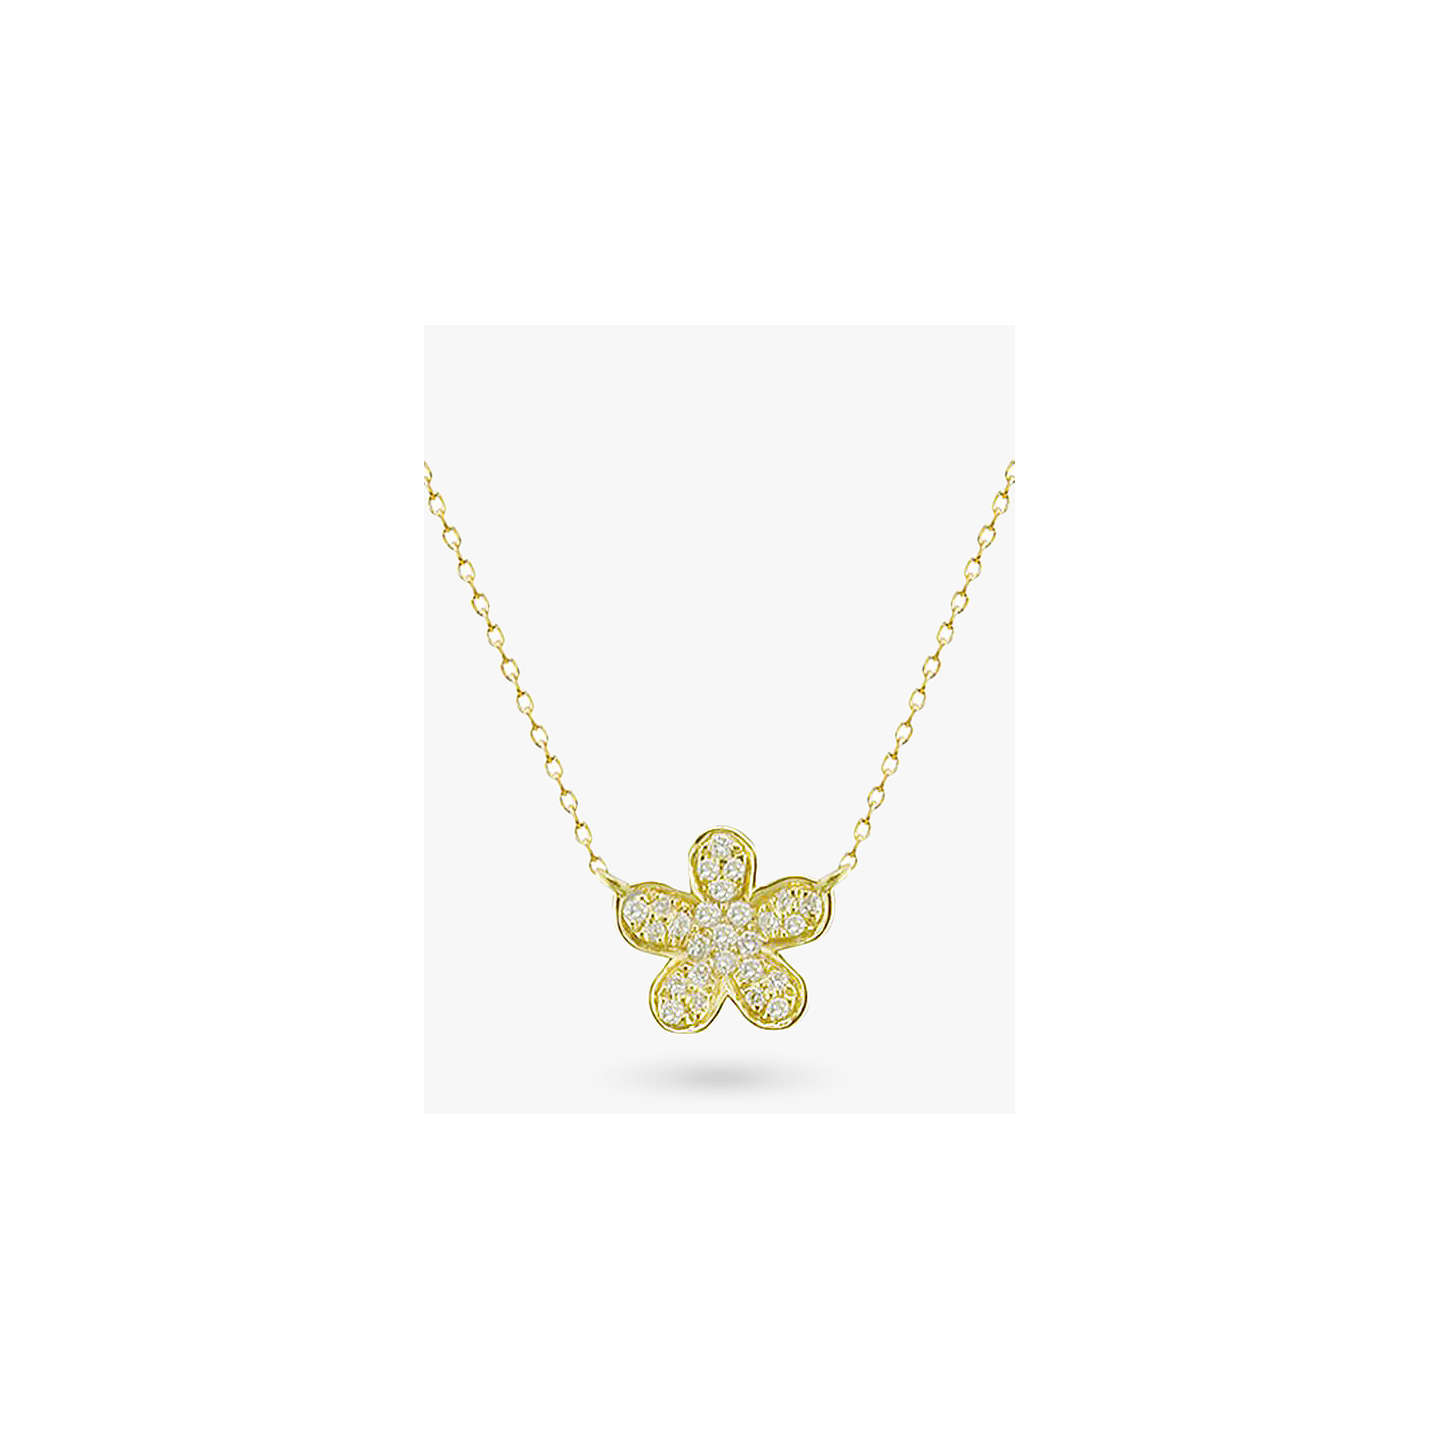 necklace zirconia gold silver main rose eq sterling n pendant oversized plated default flower premium cubic star